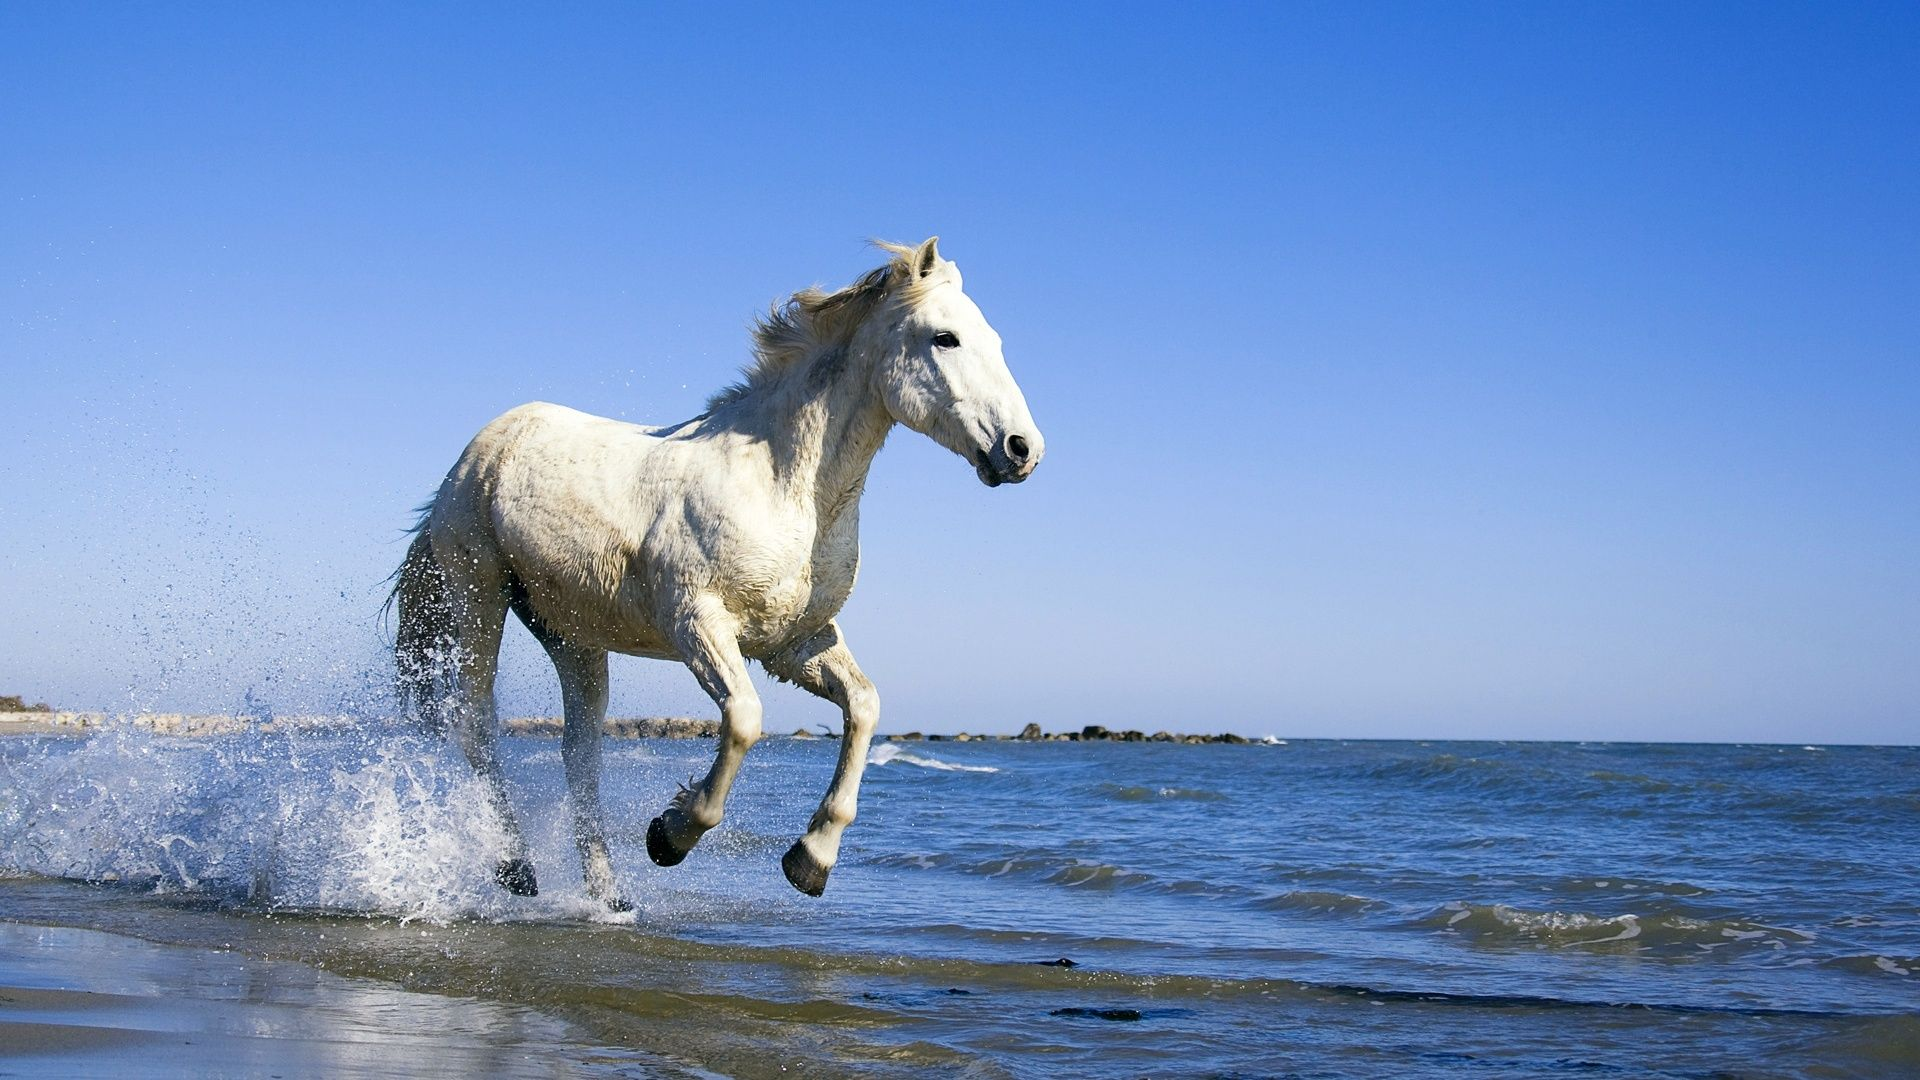 Cool Wallpaper Horse Water - 2a18ac2ccafca71489c48fcc81bd3456  Best Photo Reference_279434.jpg